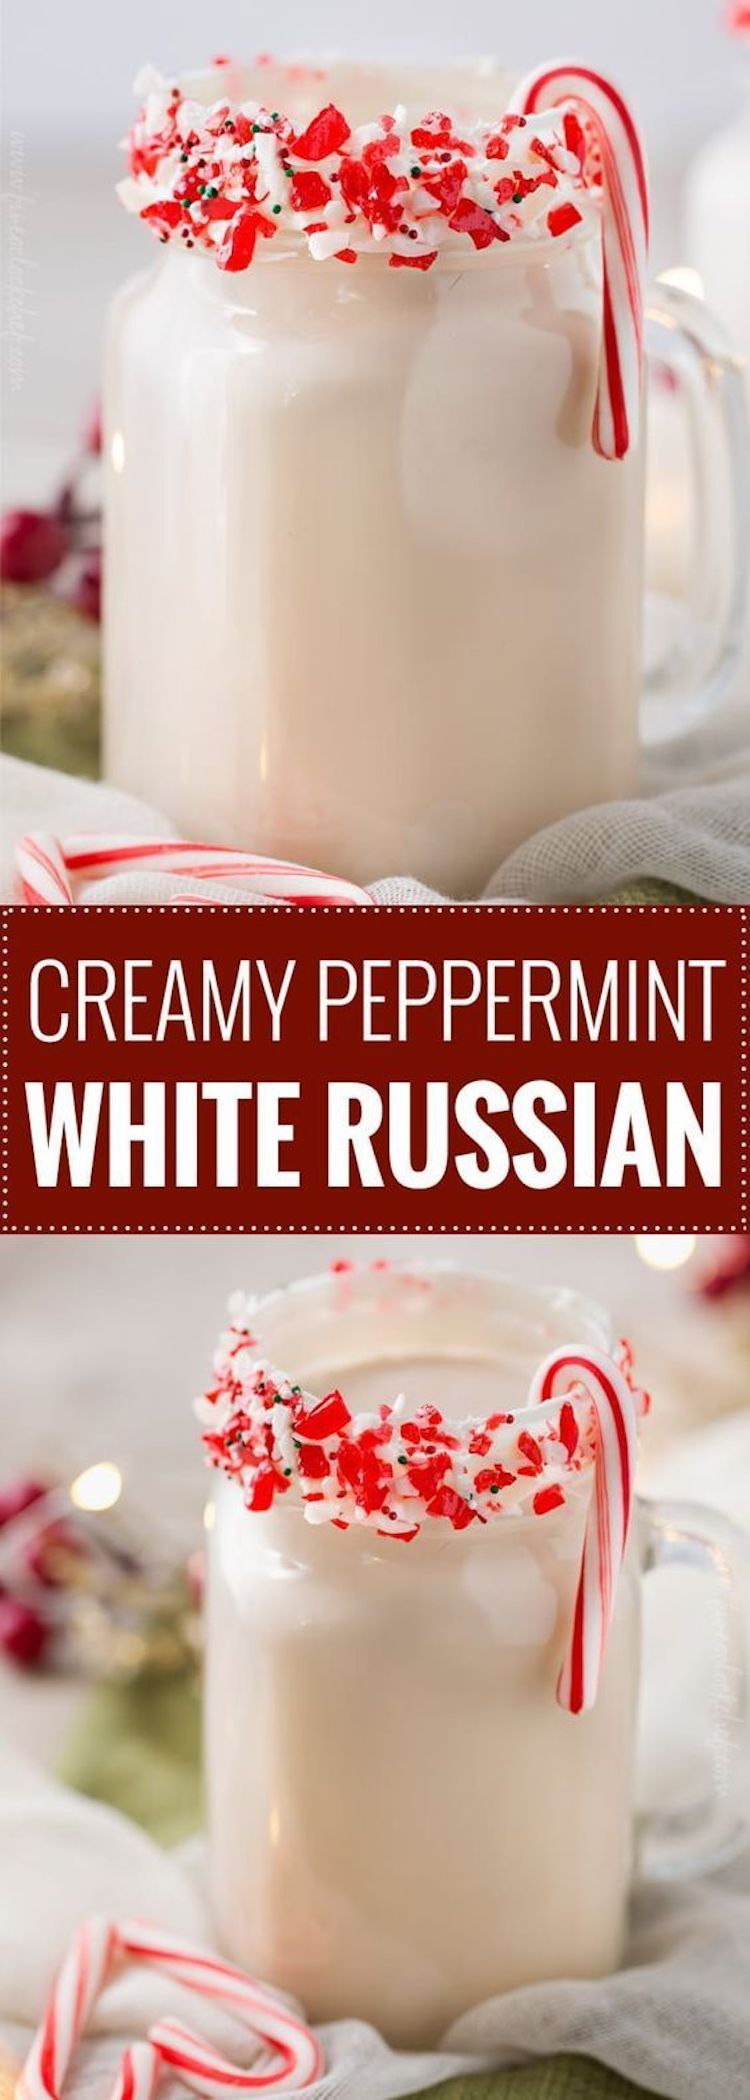 Creamy Peppermint White Russian